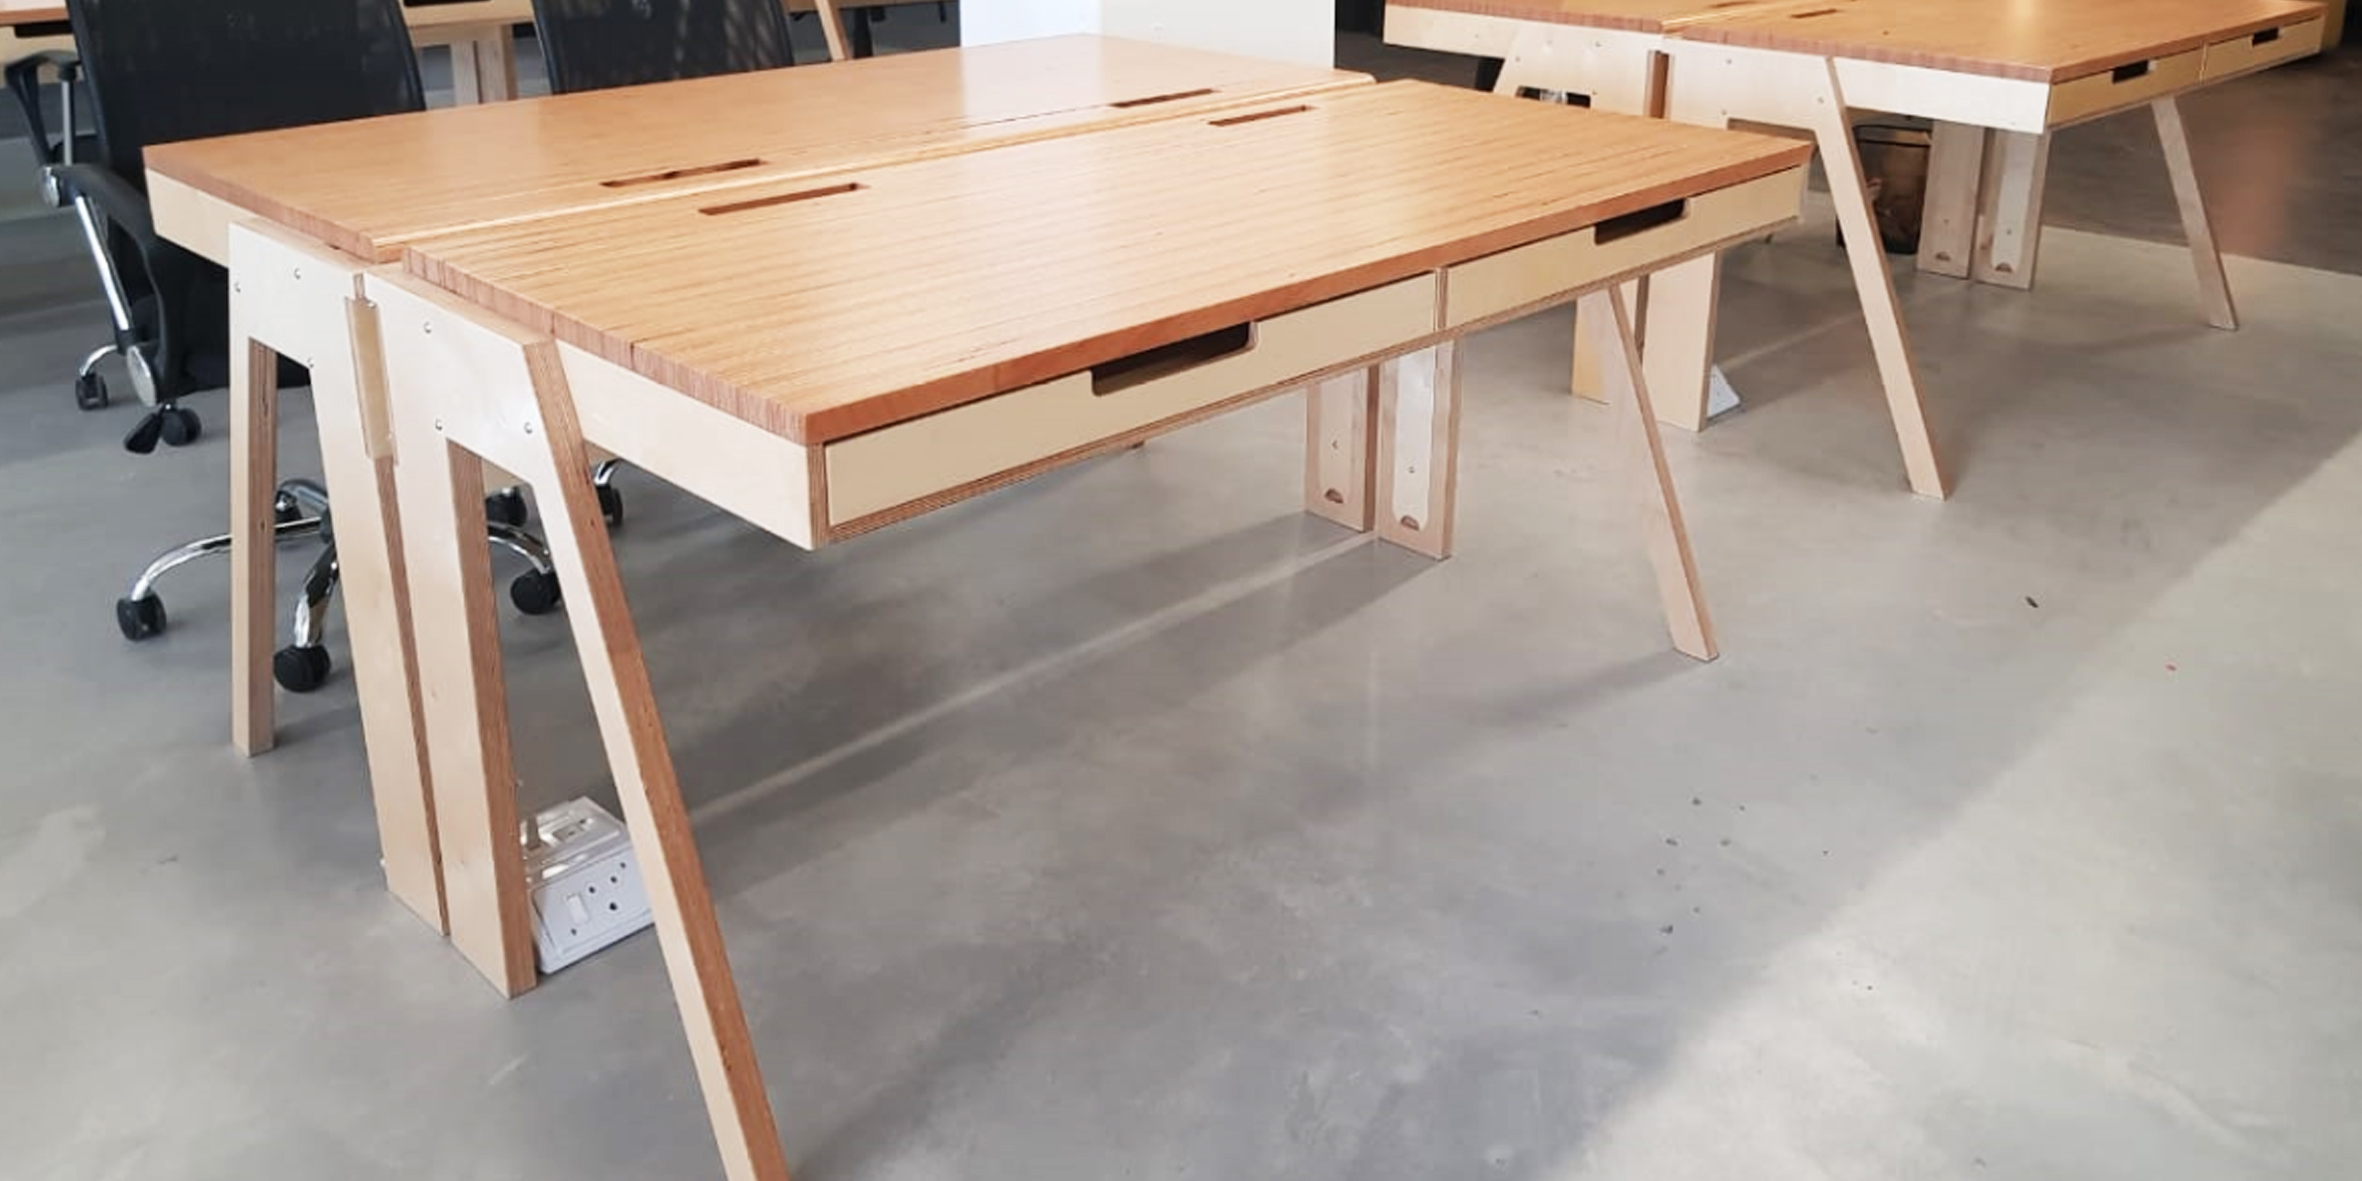 fbs - double startup desk, 1600 l x 720